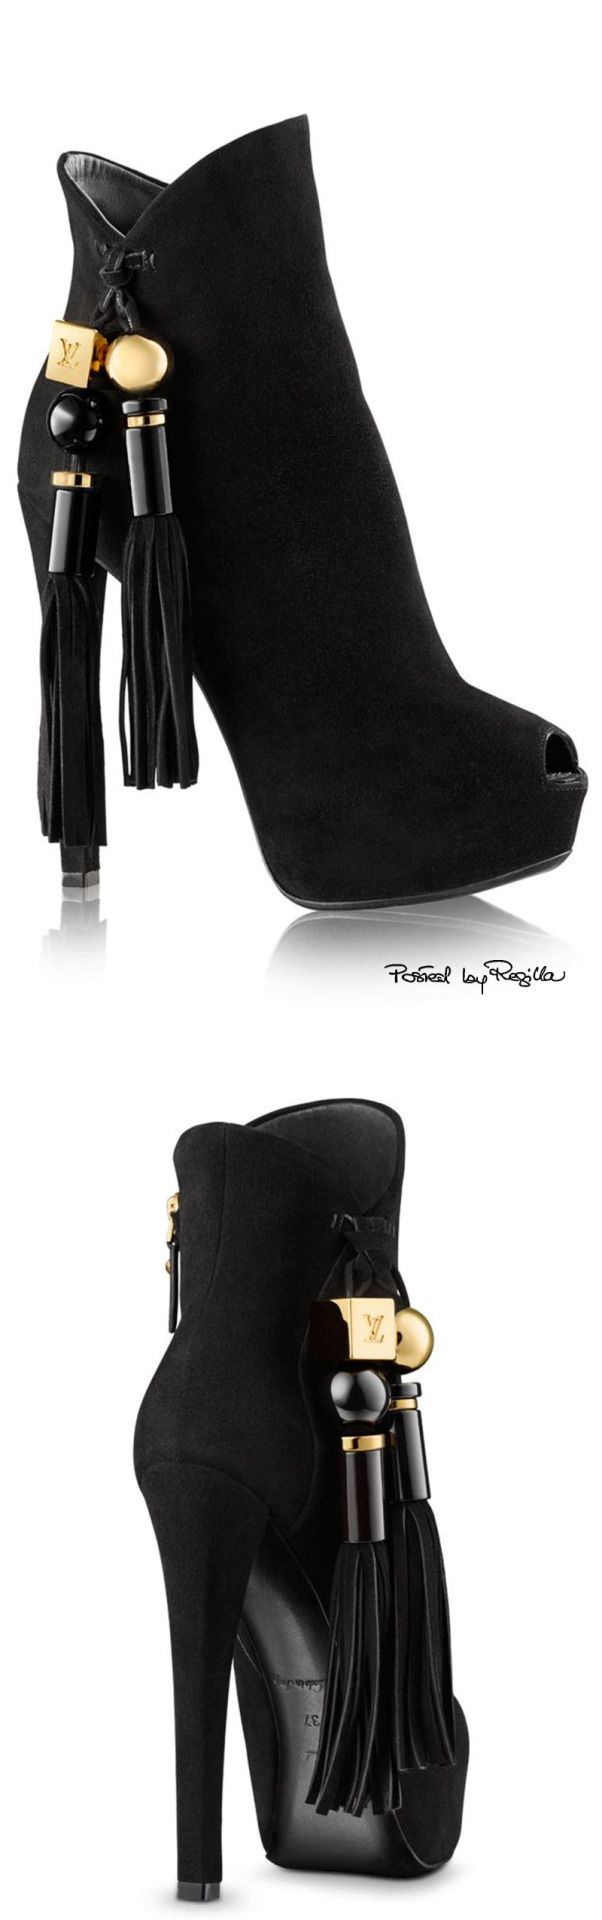 Louis Vuitton ~ Black Suede High Heel Boots w tassel, 2015